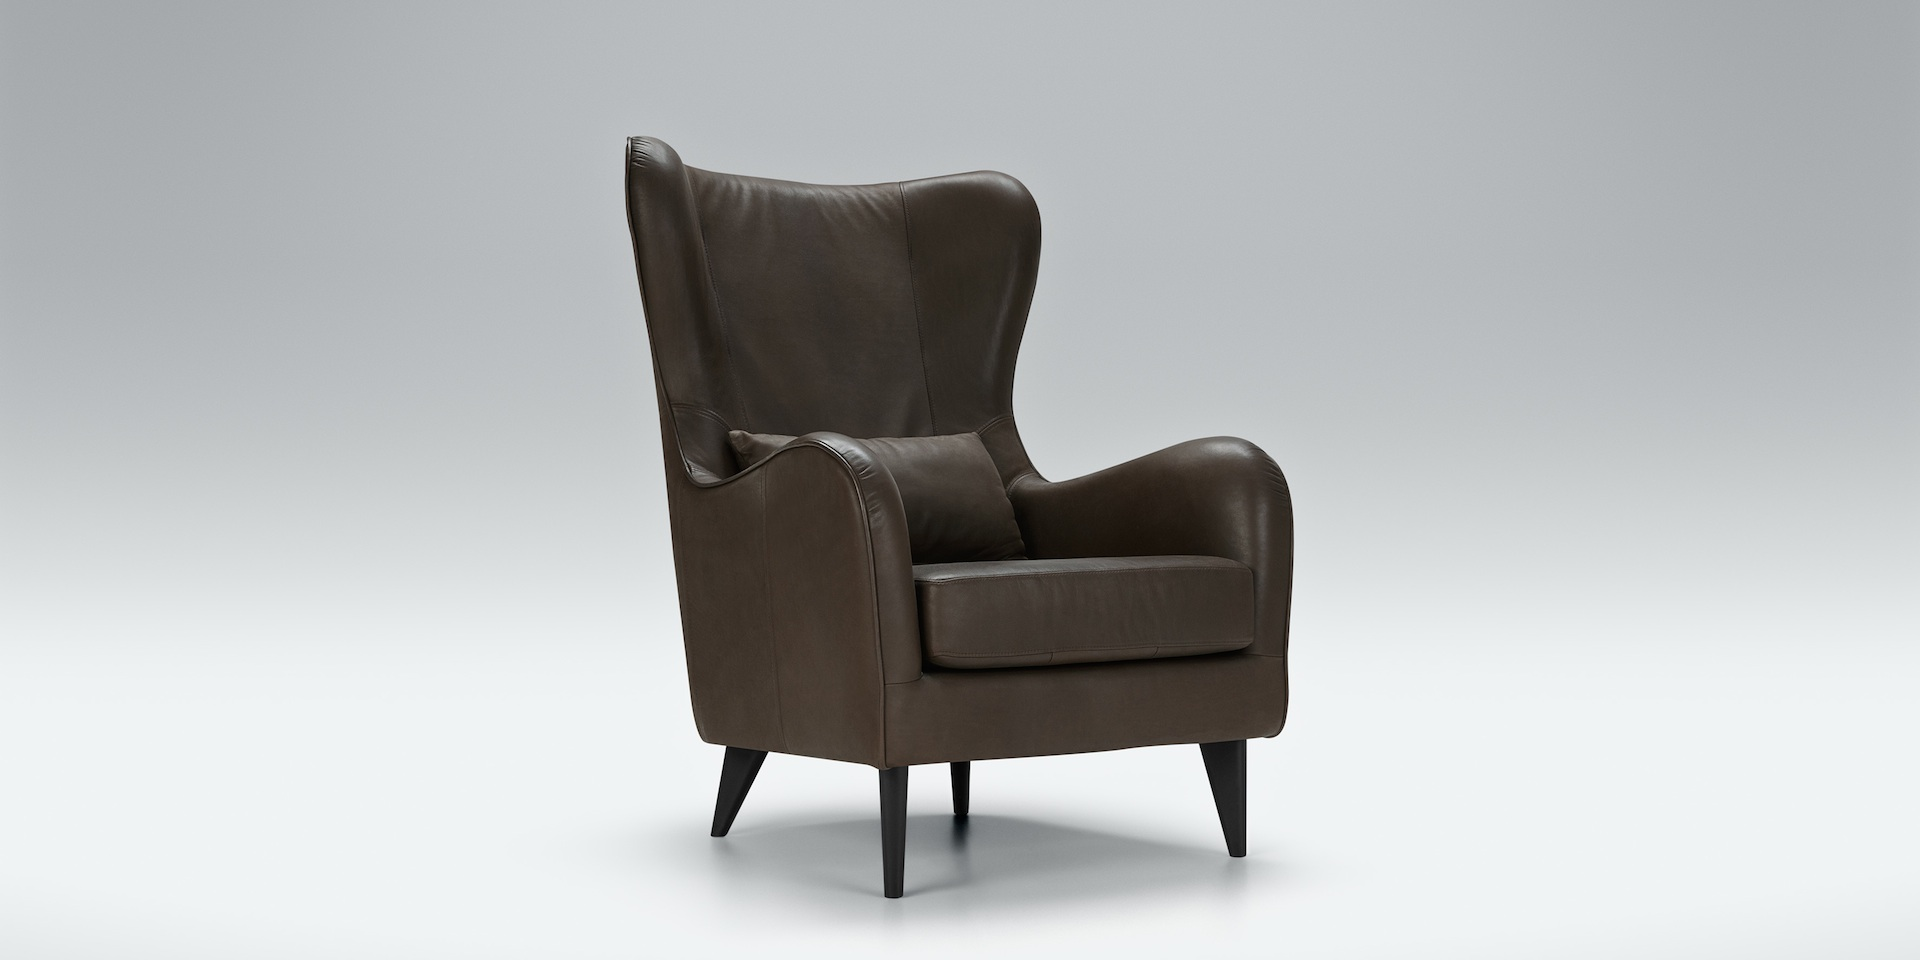 GRETA_shadow_armchair_aniline3_dark_brown_3